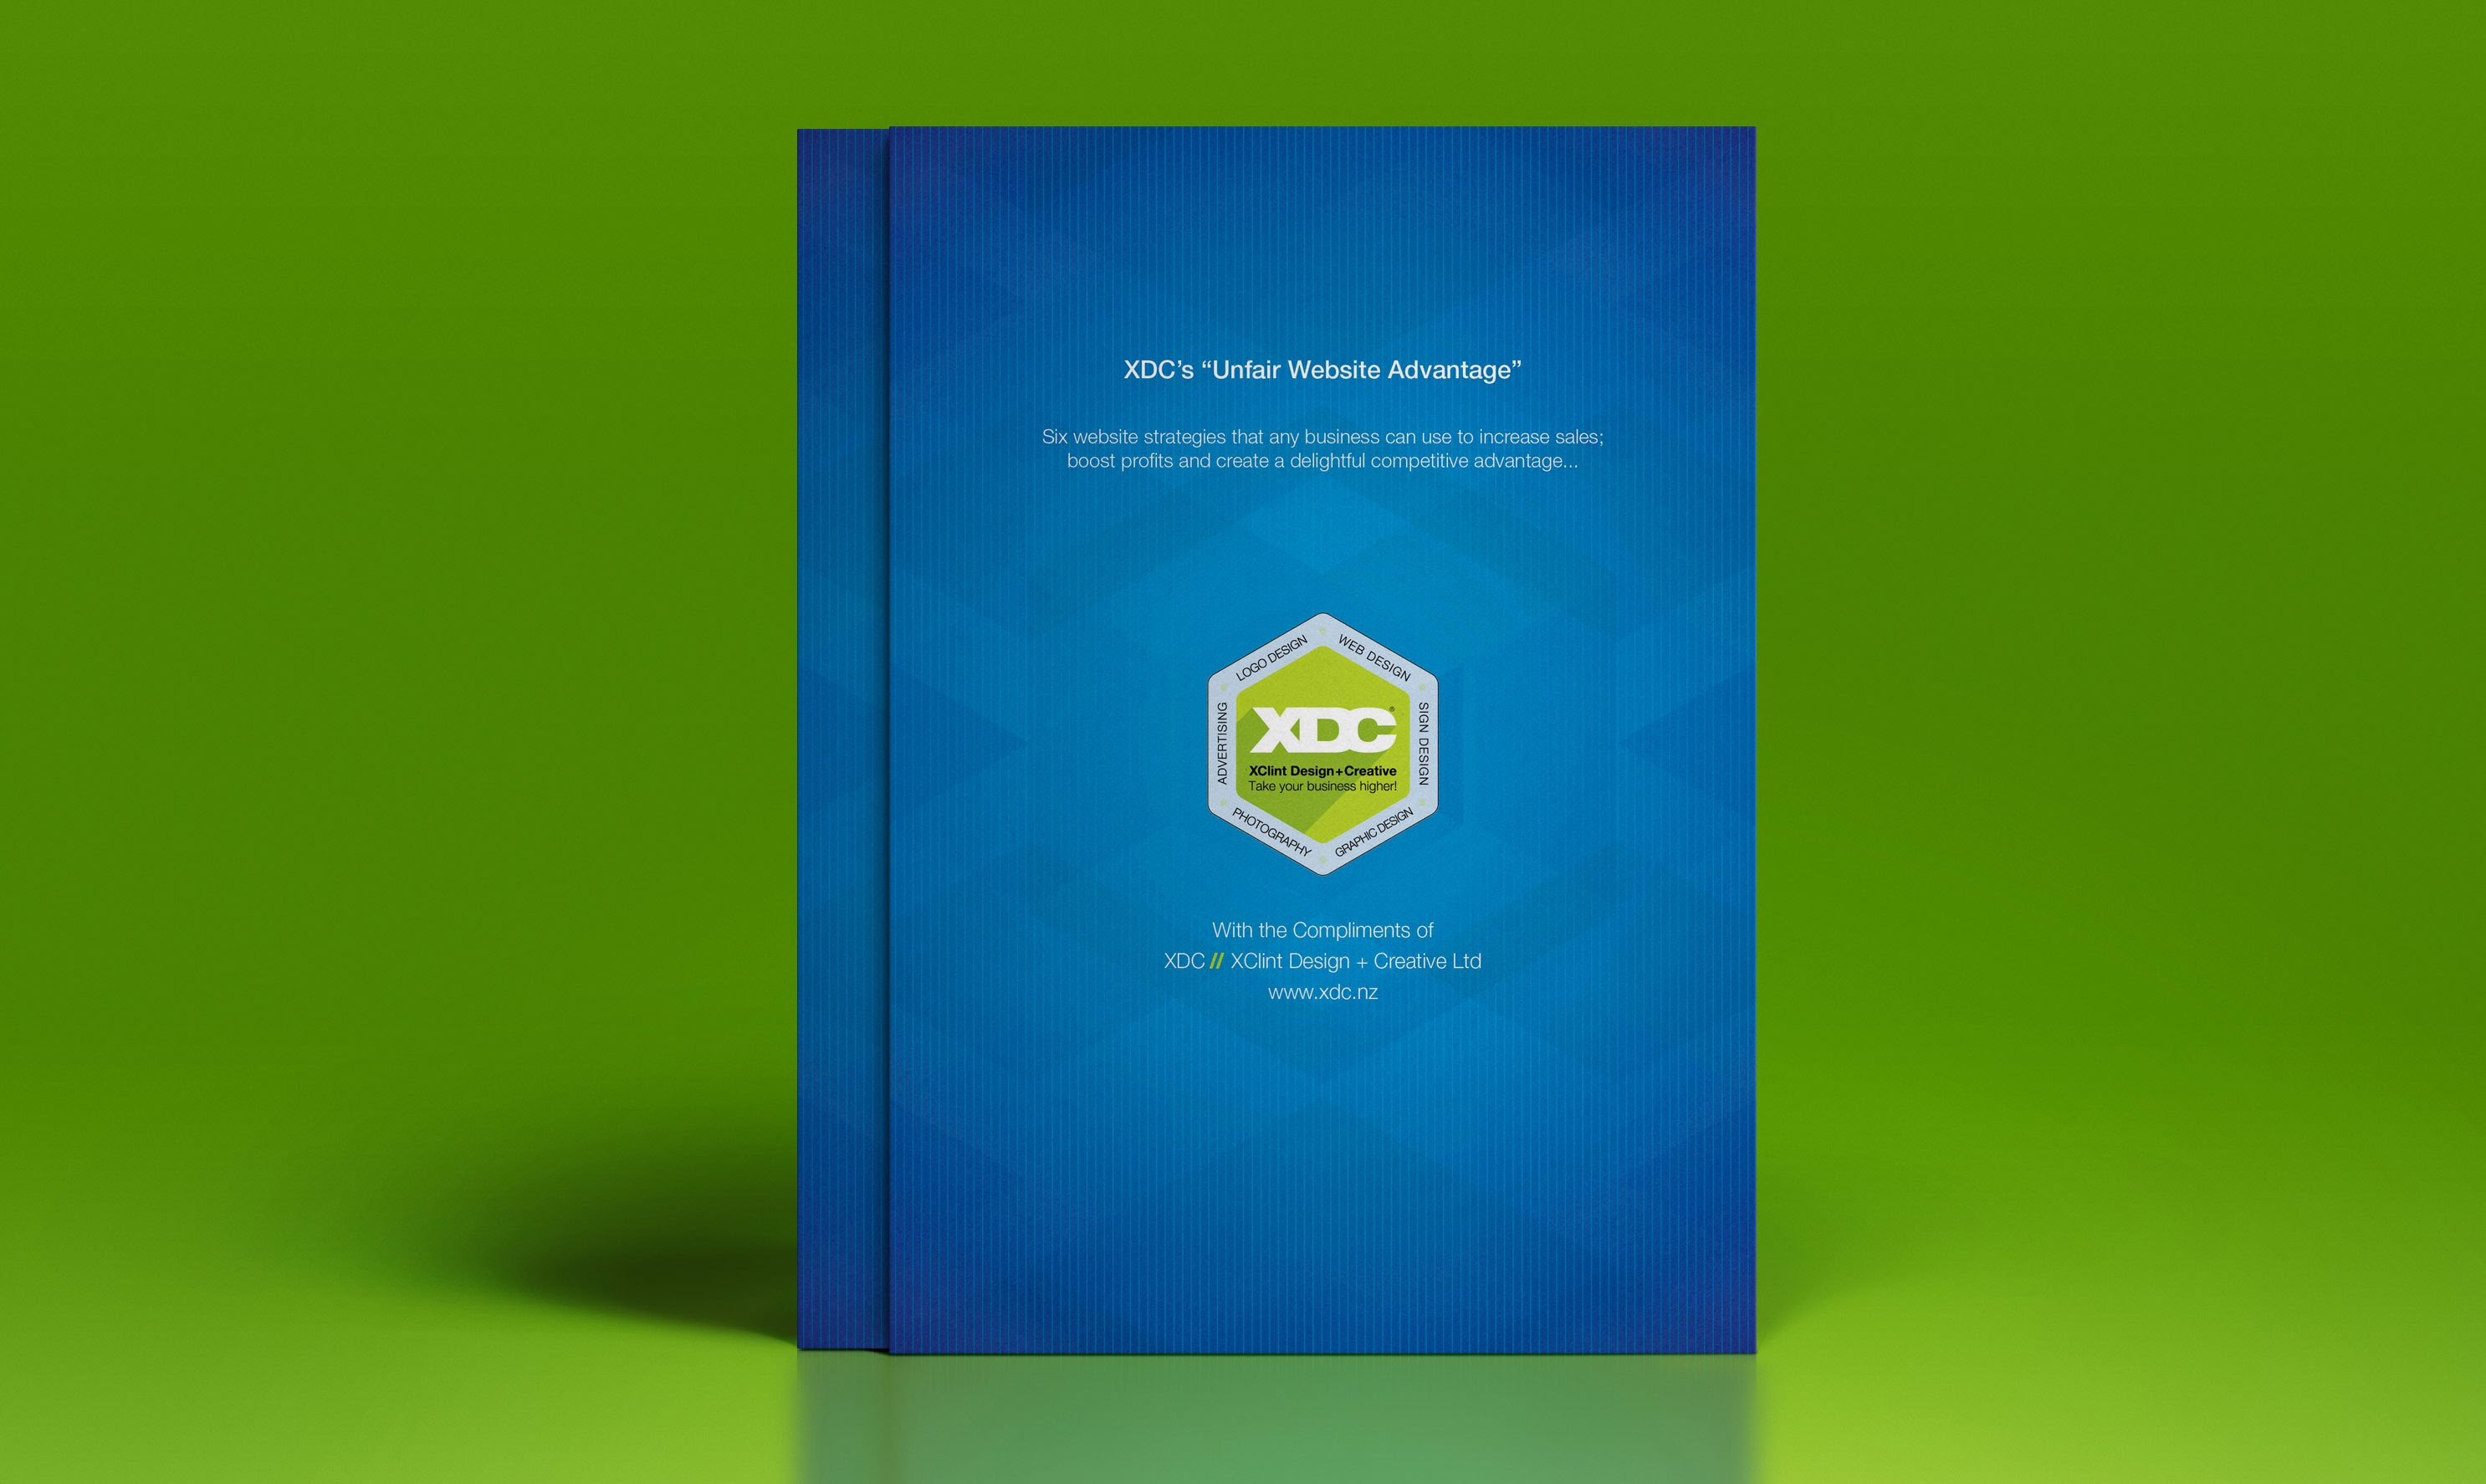 XDC's Unfair Website Advantage - How to get a better website